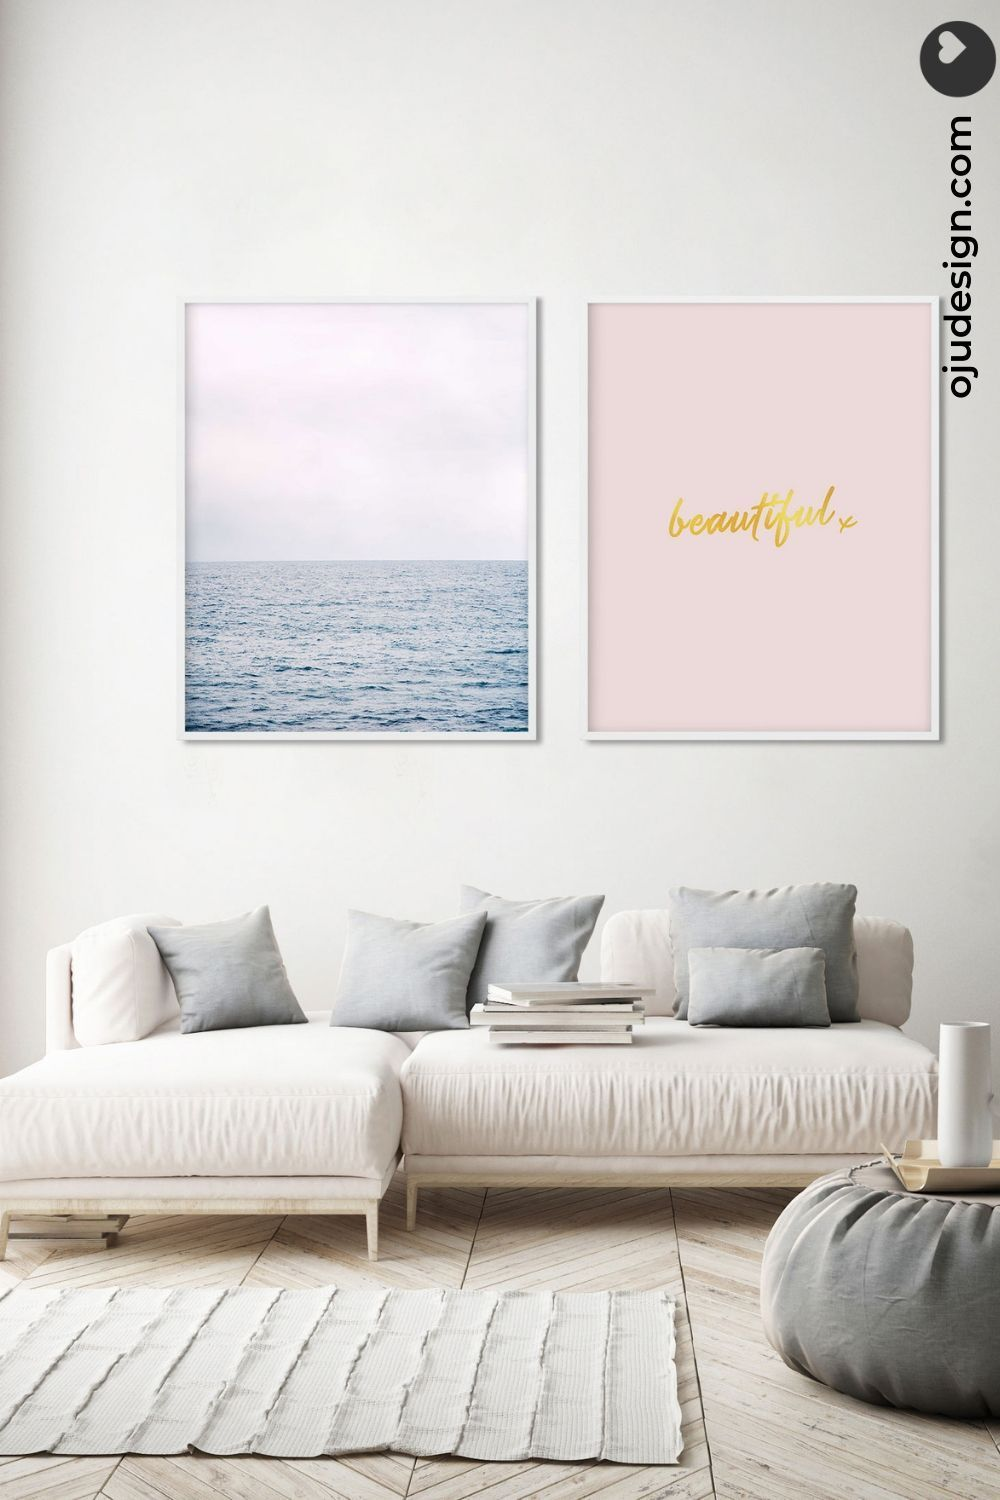 Set Of Two Wall Art Bedroom 2 Piece Wall Art Pair Of Prints Gallery Wall Set Of 2 Wall Art Blue And Pink Wall Art Gallery Wall